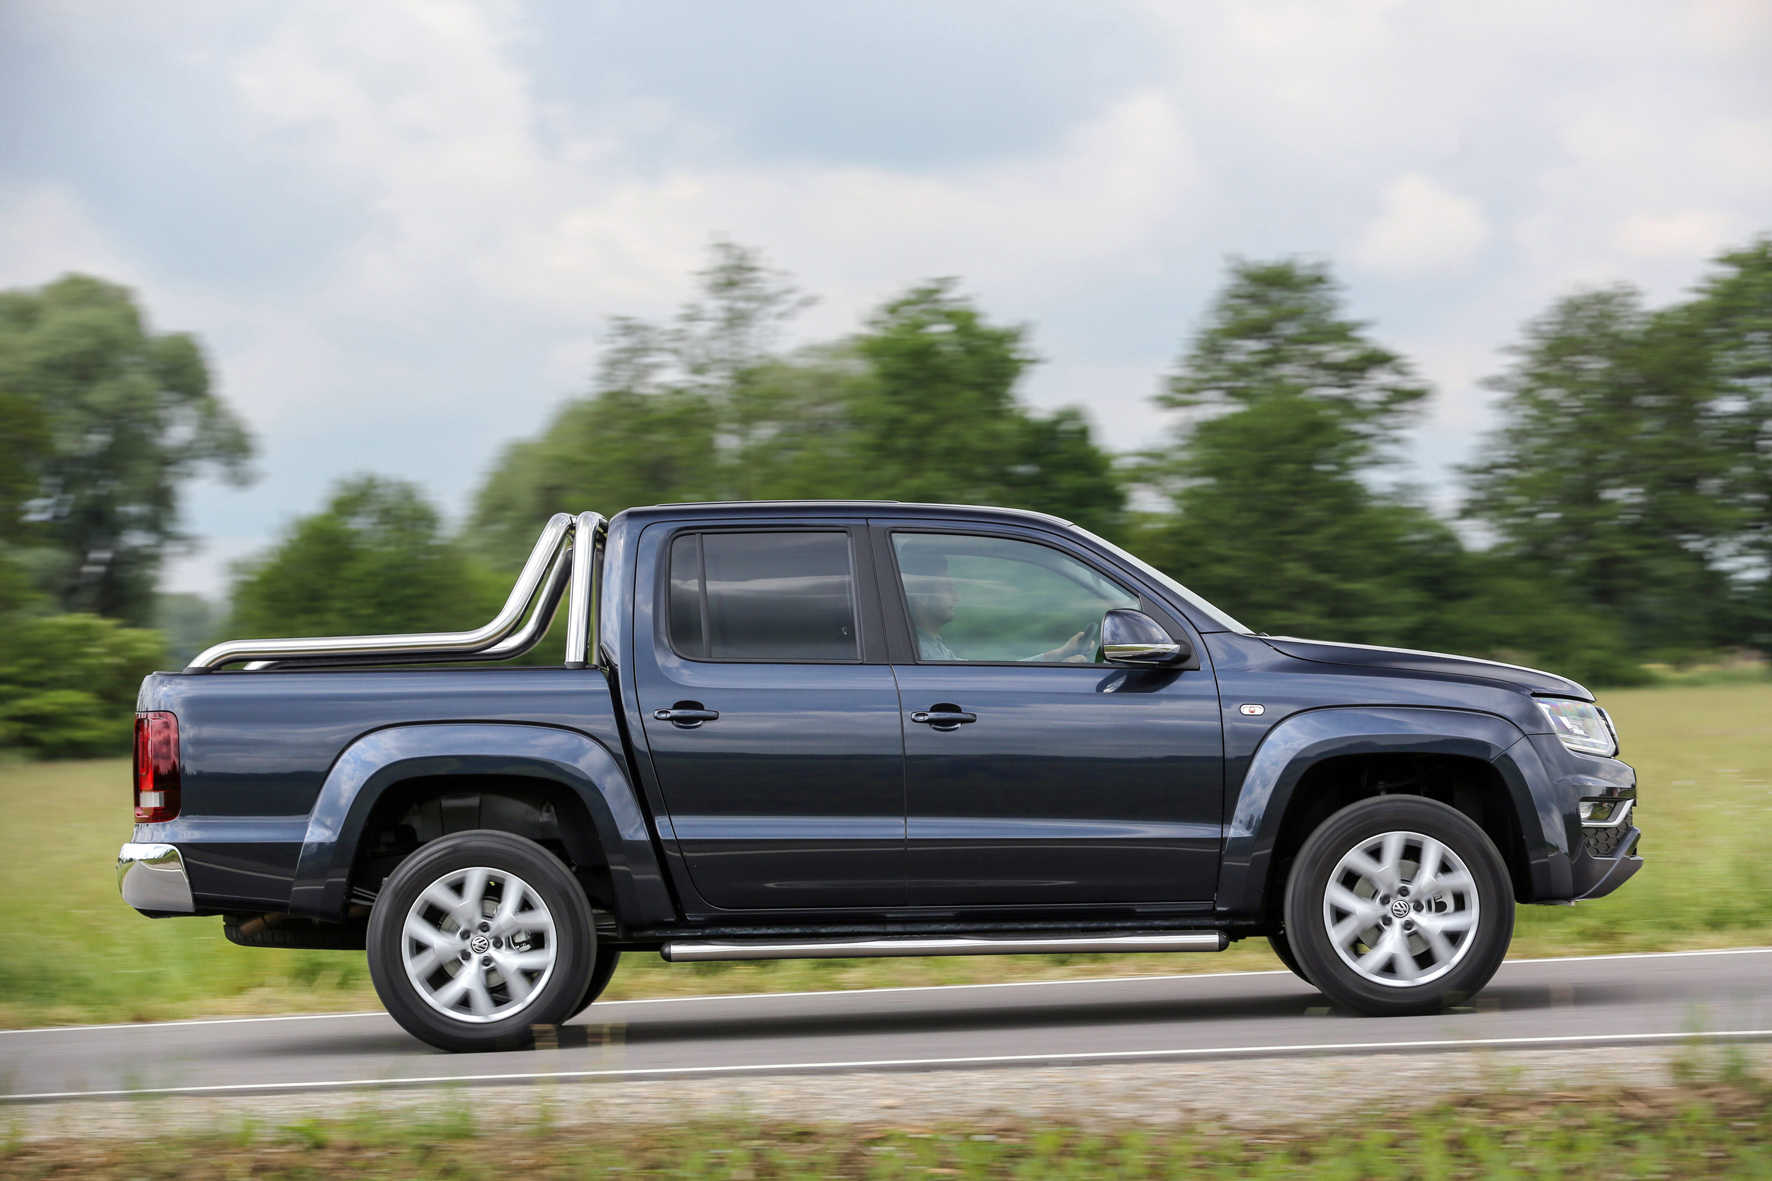 The Amarok V6 travelling along a tree-lined road